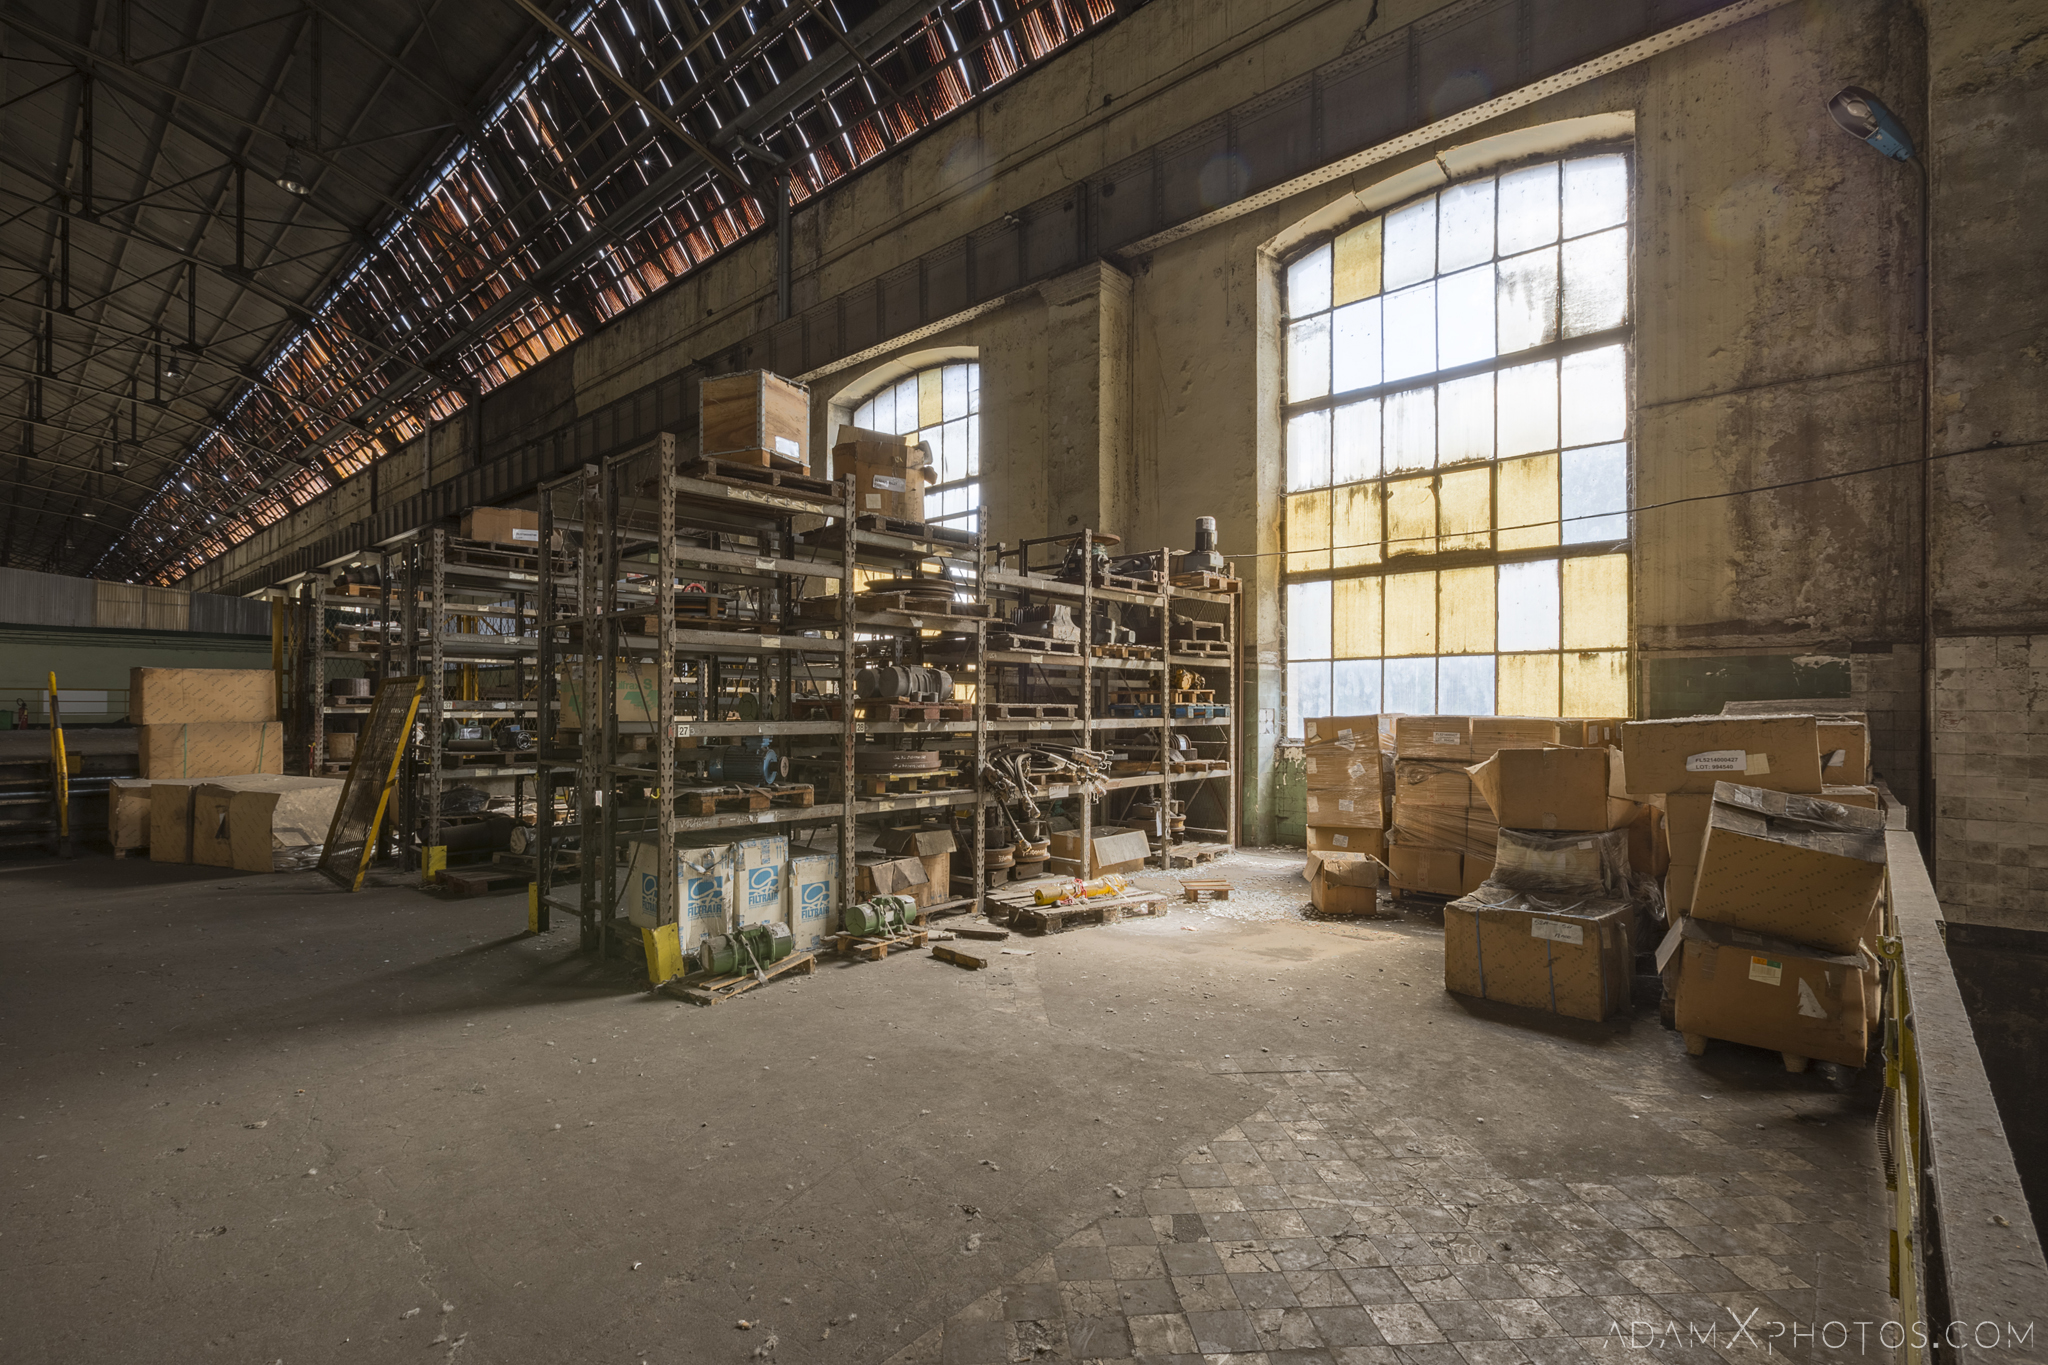 spare parts storage Turbo blower house warehouse store rooms bottom of blast furnace P3 HFX Florange Hayange ArcelorMittal blast furnaces steel works plant Industrial Industry Adam X Urbex Urban Exploration France Access 2017 Abandoned decay lost forgotten derelict location creepy haunting eerie